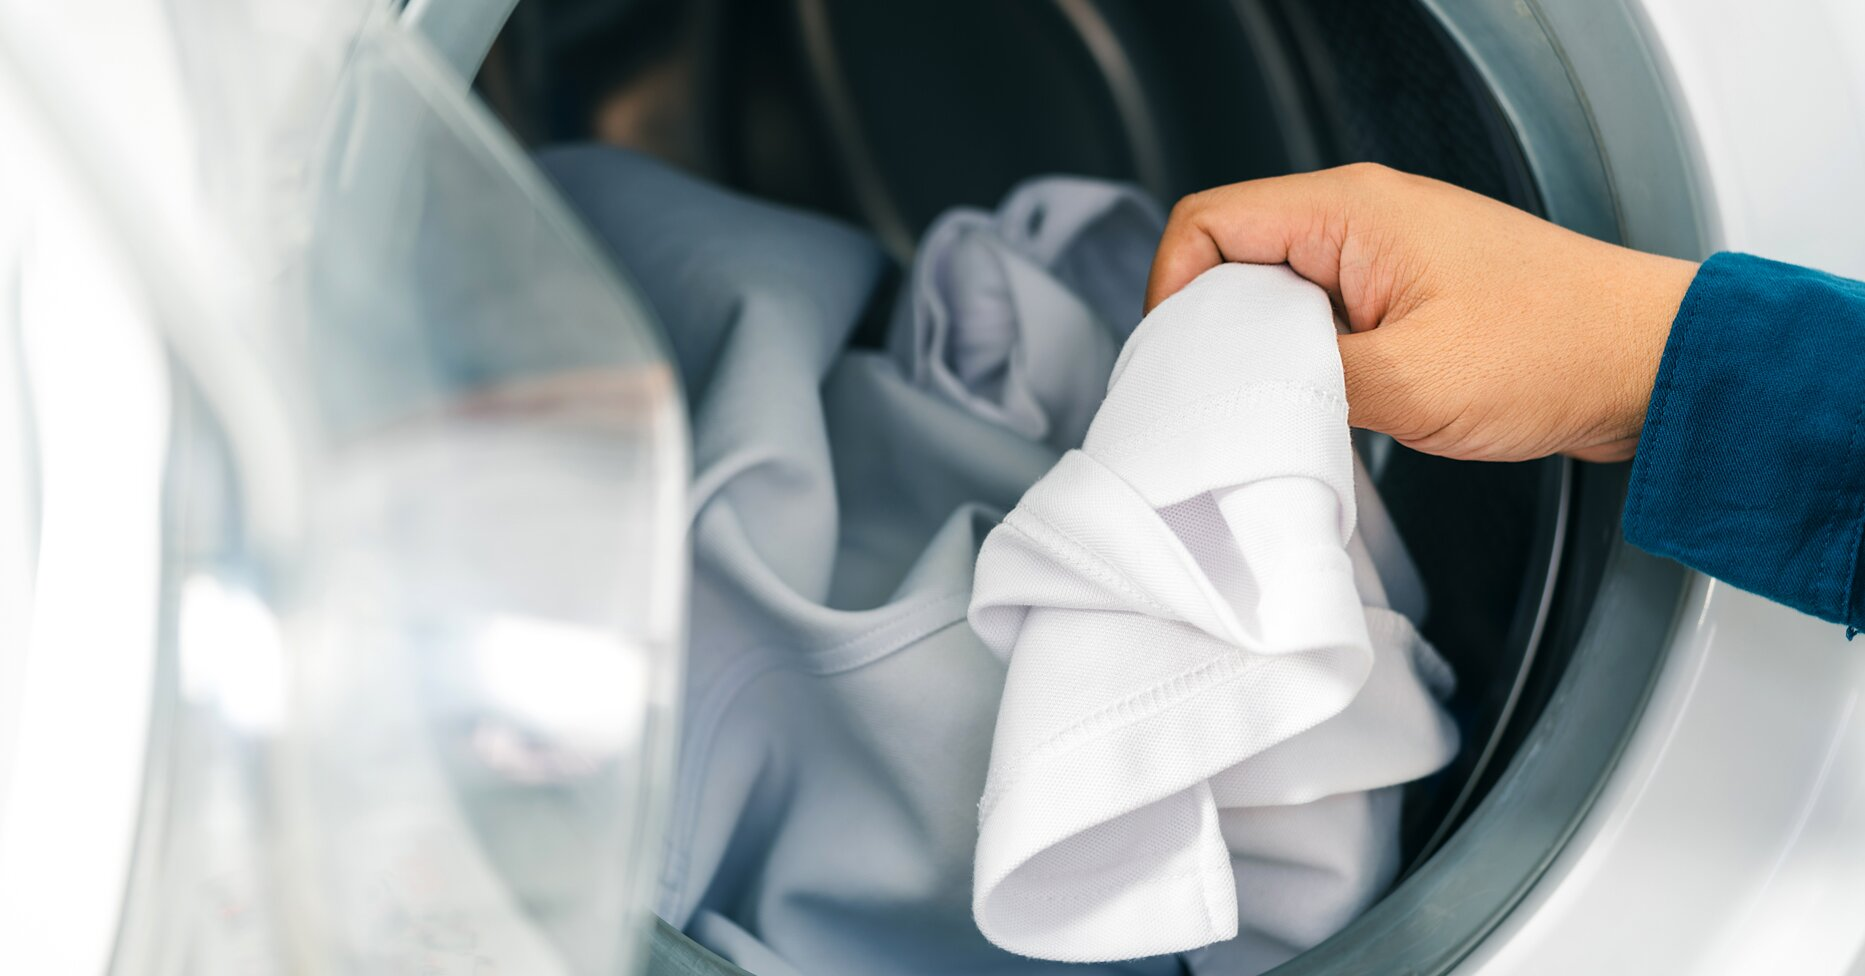 When Should You Avoid Using Fabric Conditioner?